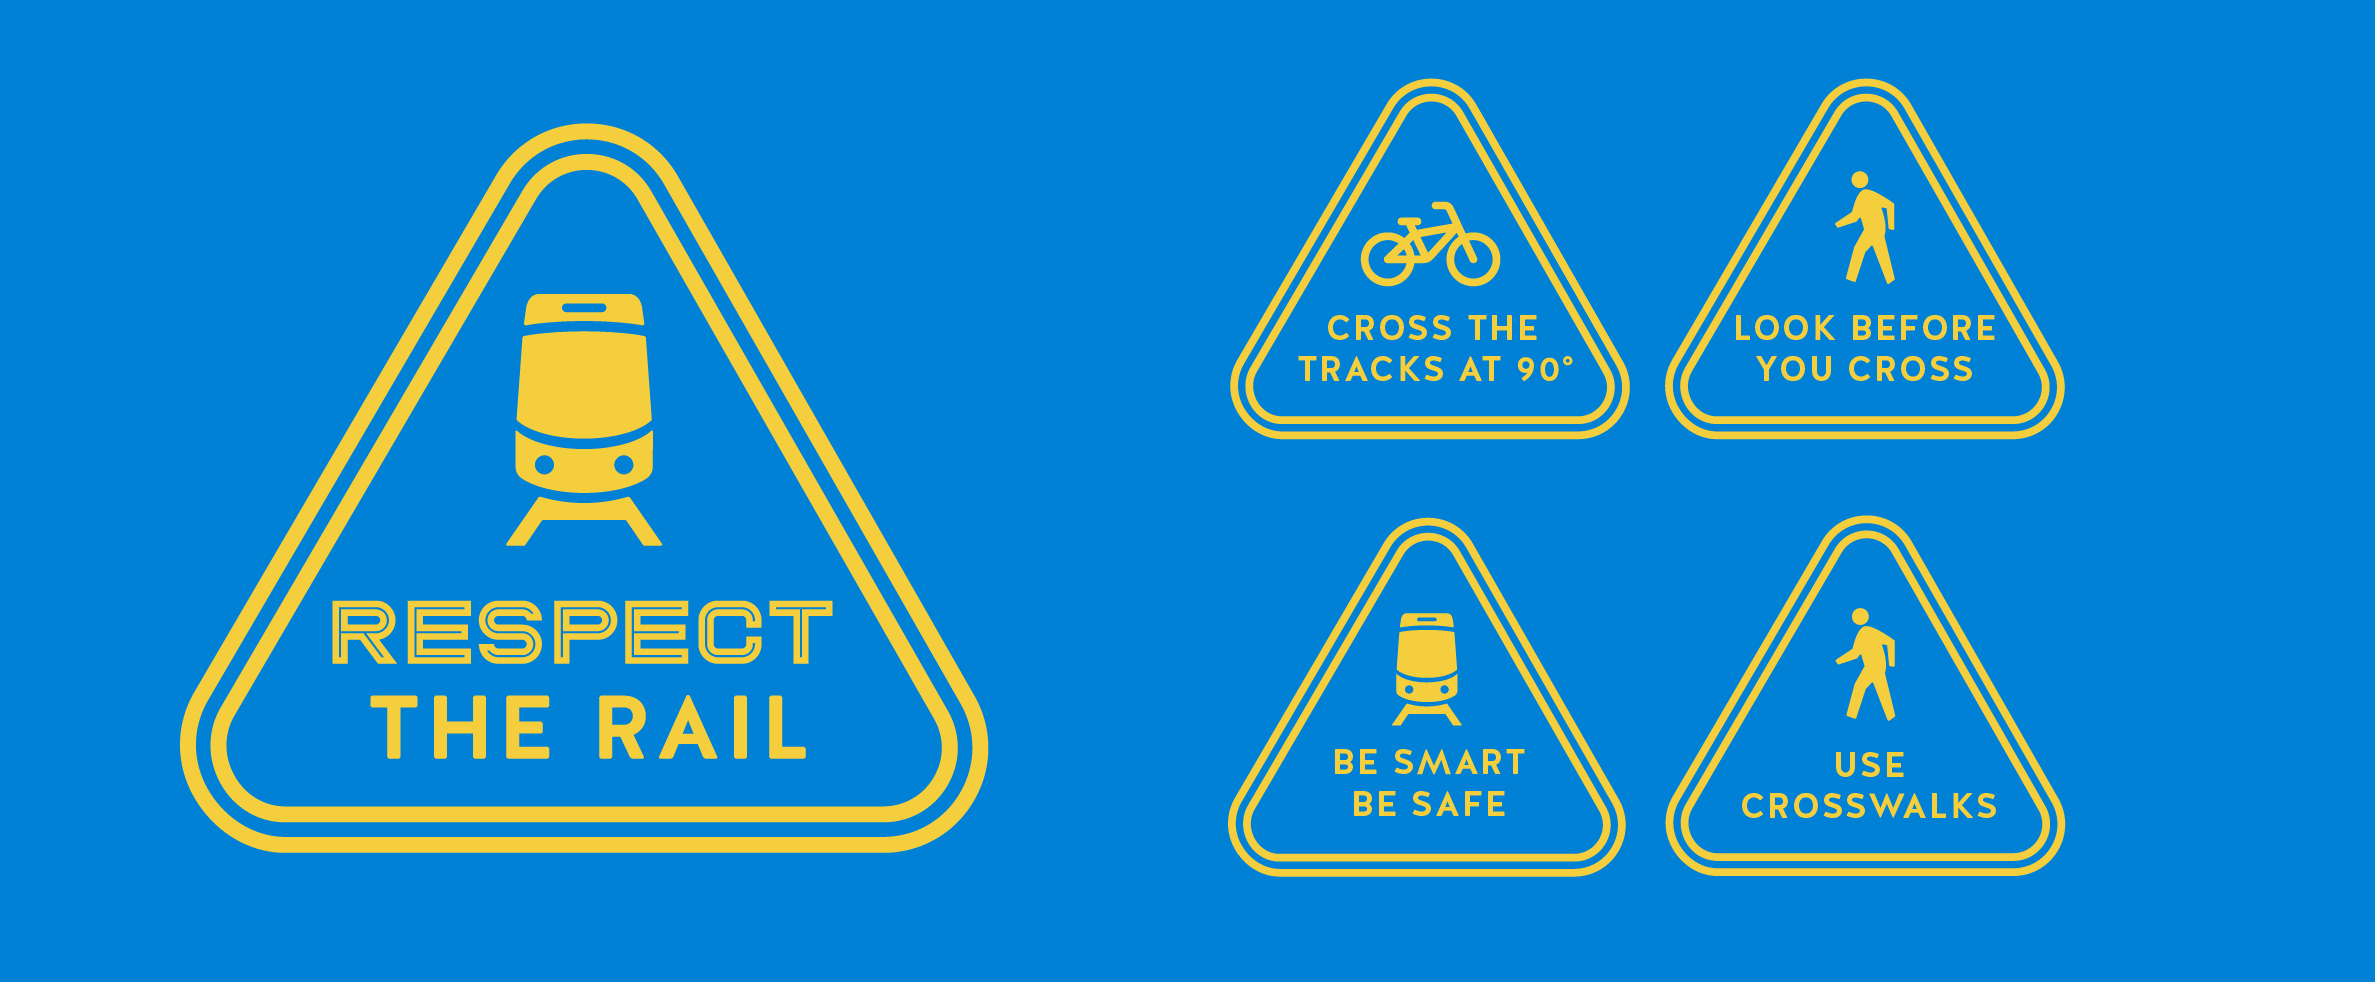 Kansas City Streetcar Safety Campaign